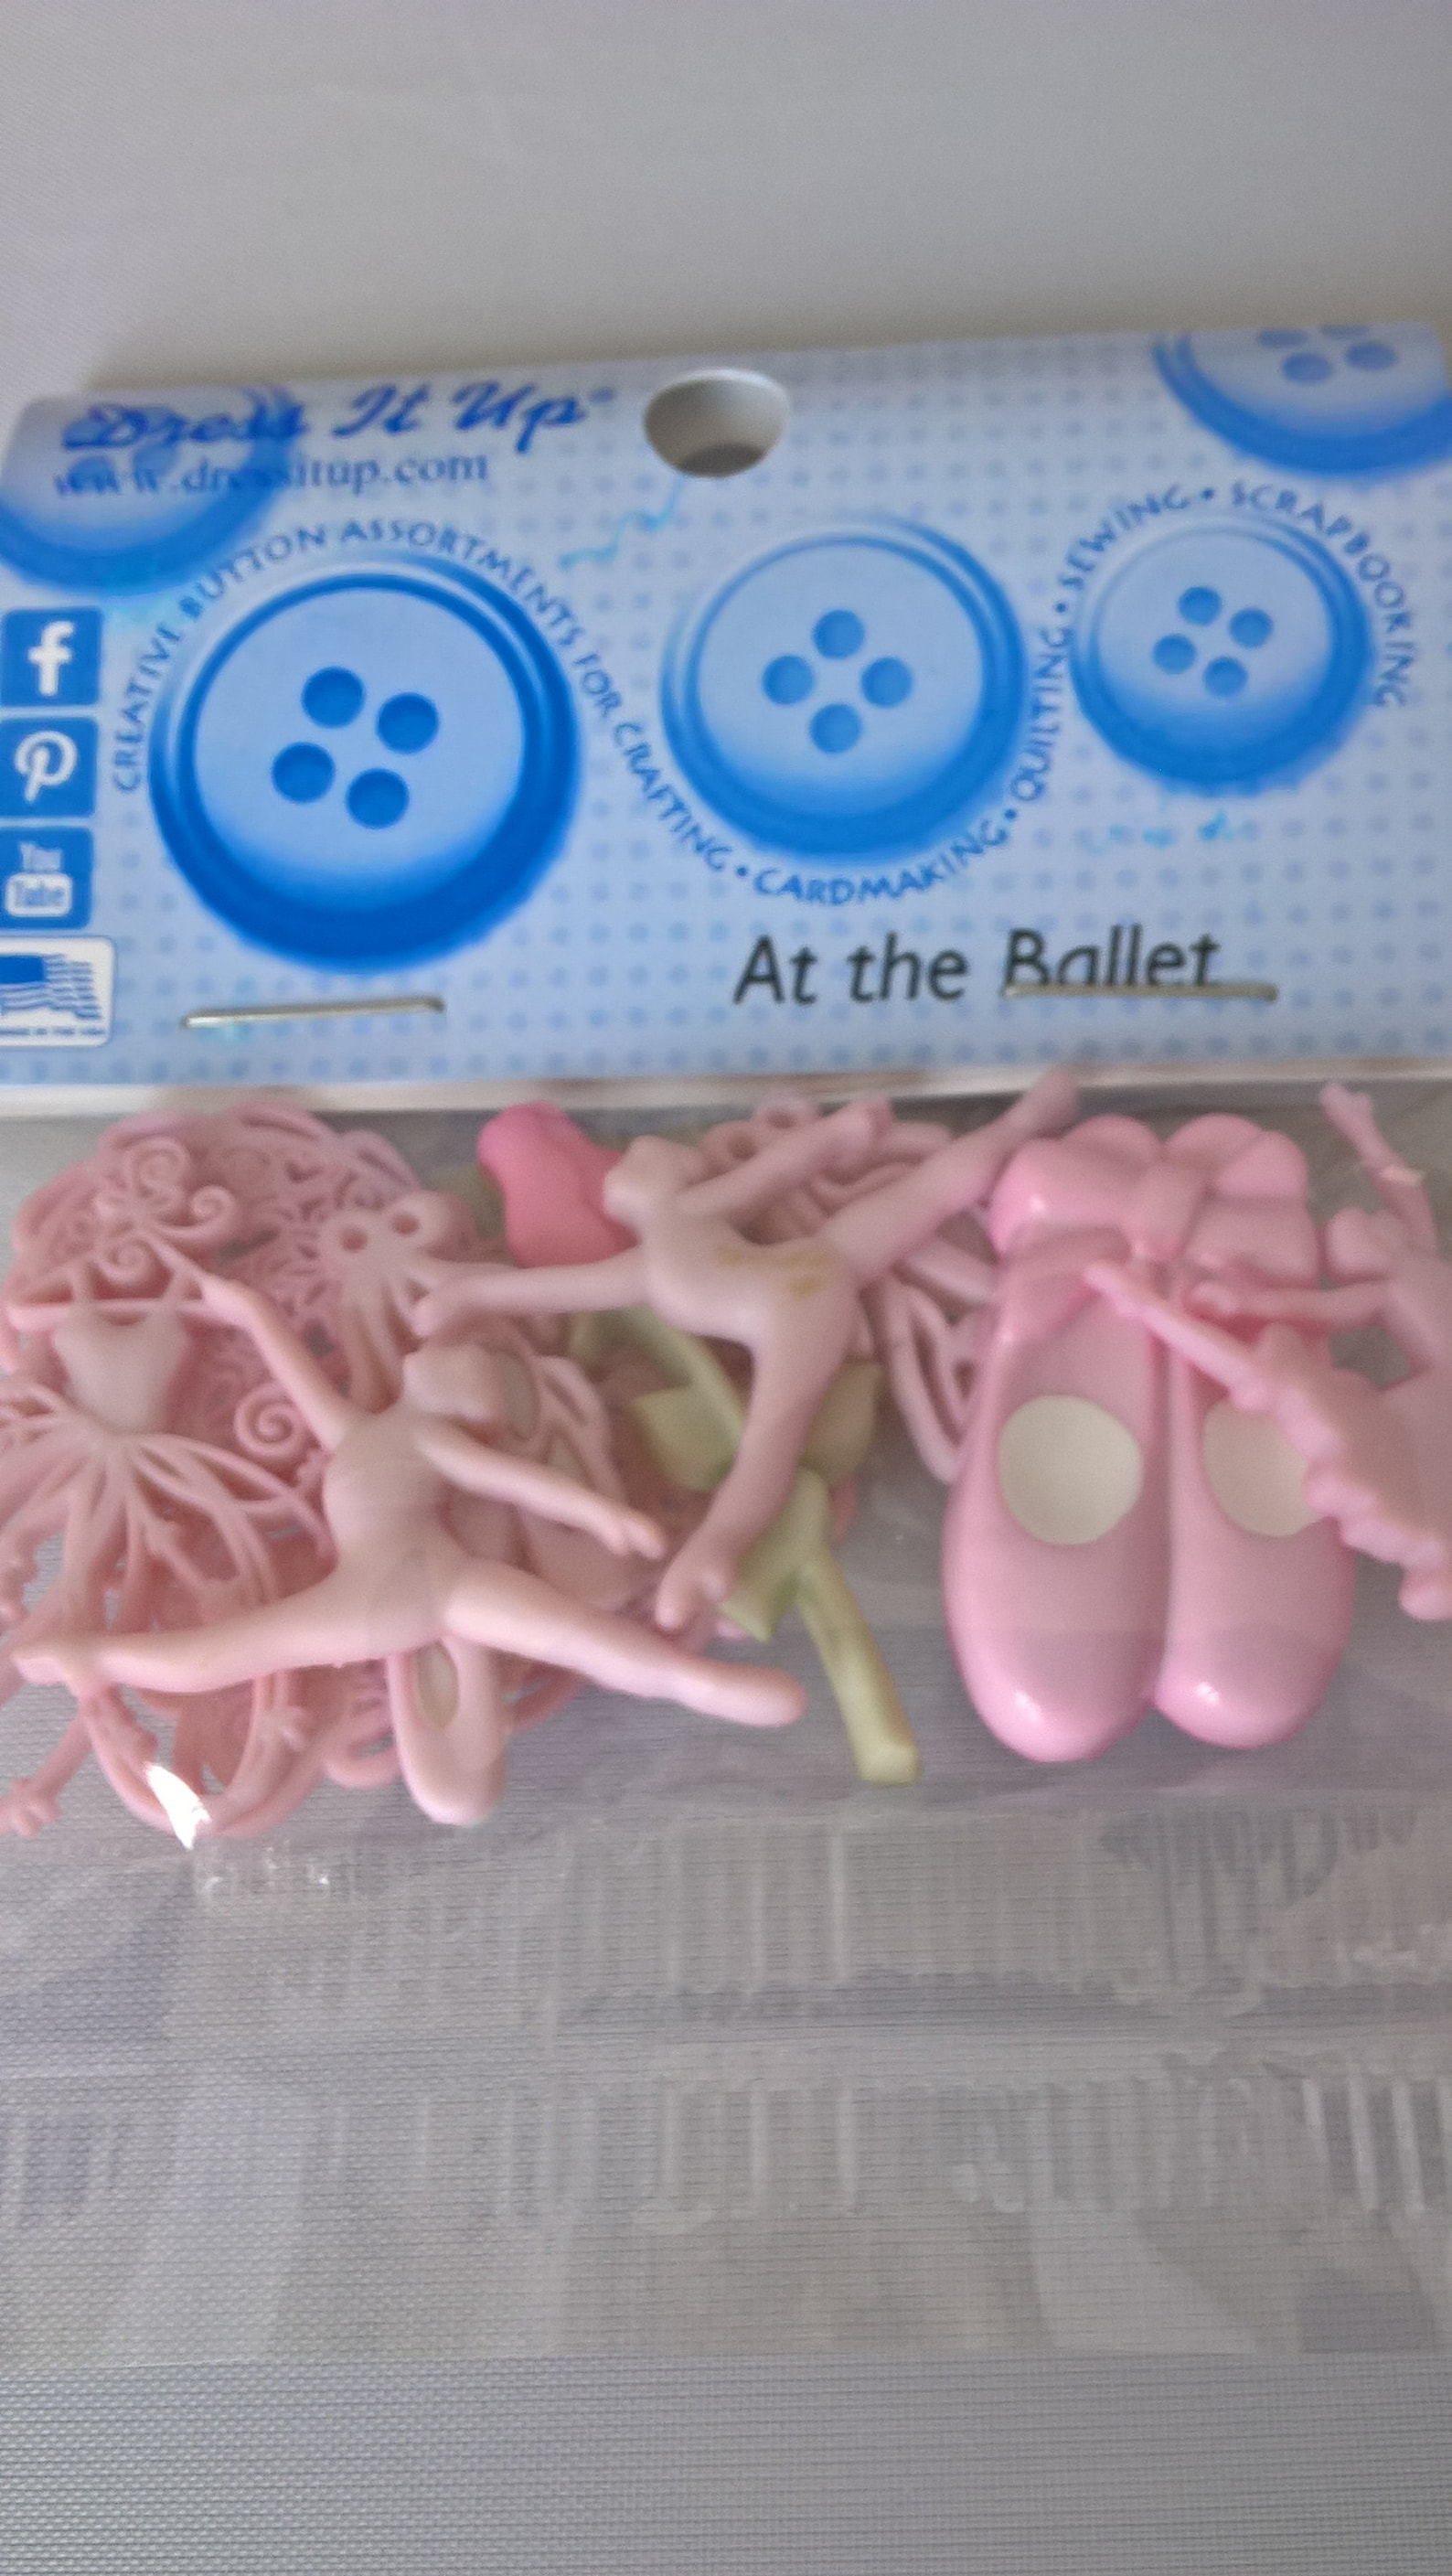 dress it up at the ballet button embellishment pack, ballet buttons, craft making supplies, scrapbooking supplies